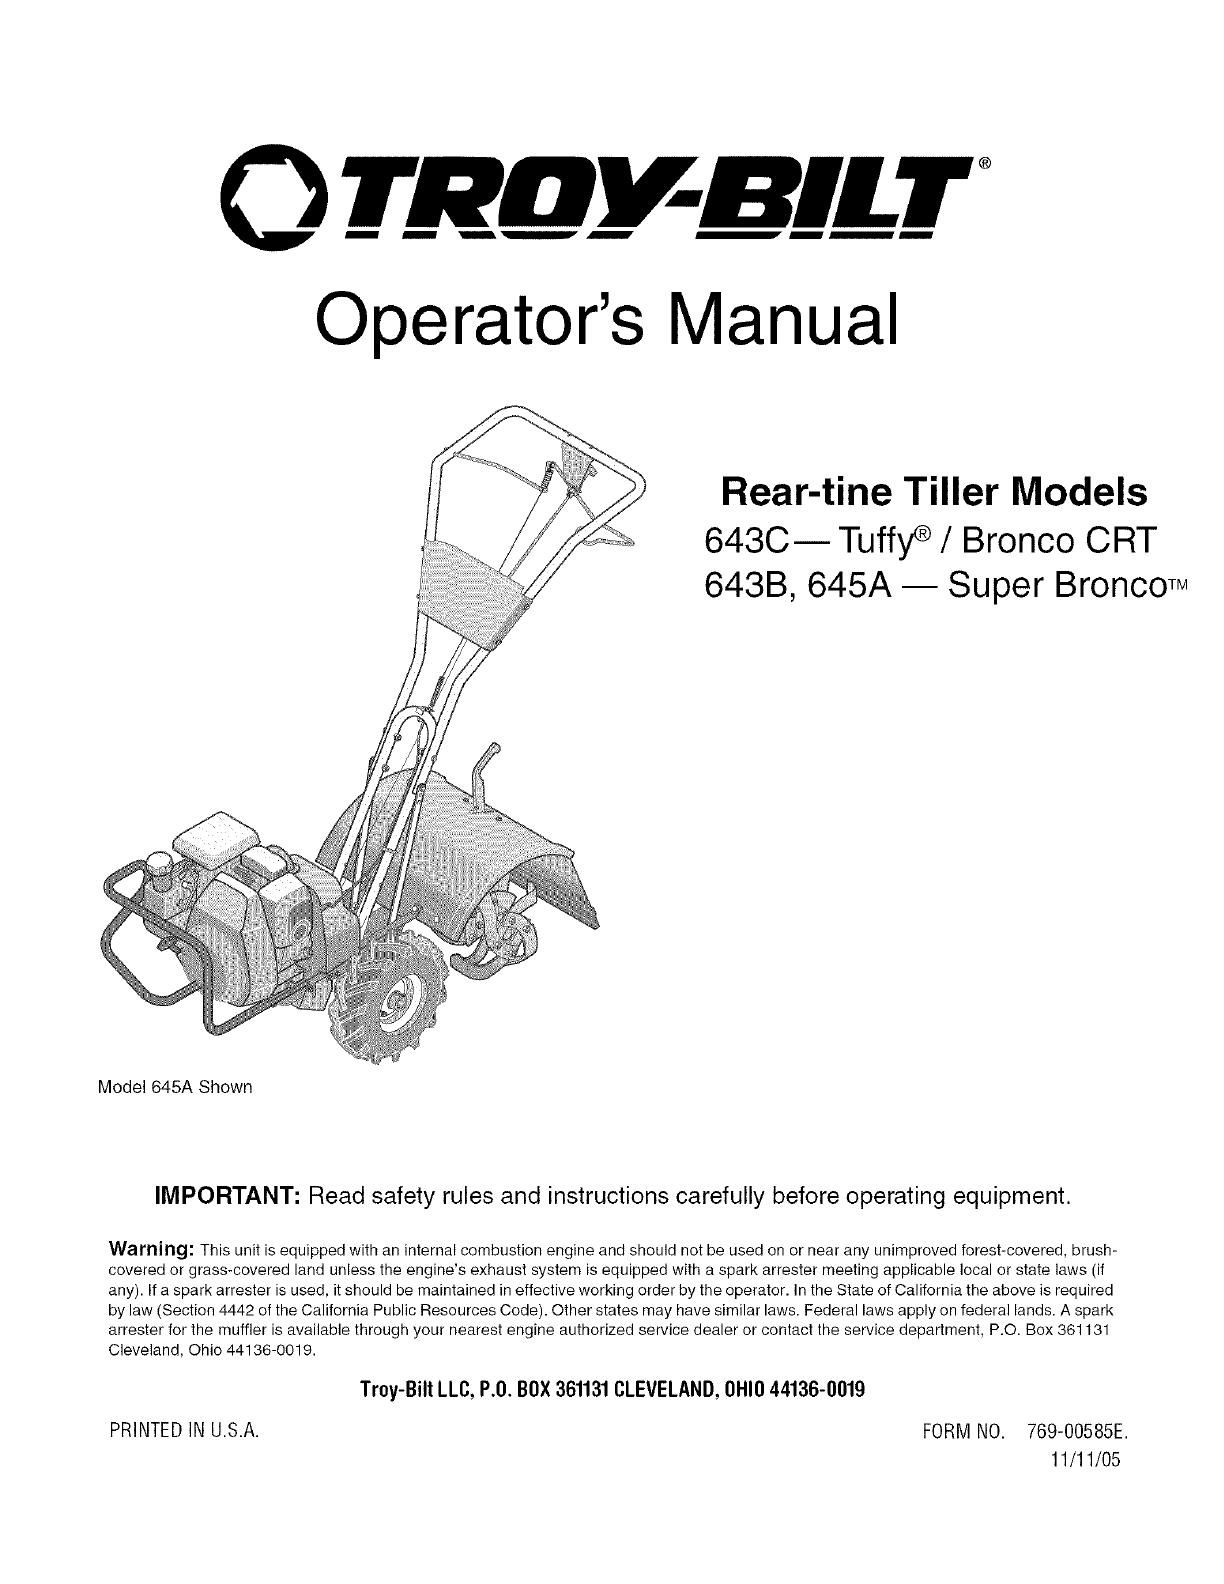 hight resolution of troybilt 21a 643b711 user manual rear tine tiller manuals and guides l0601227